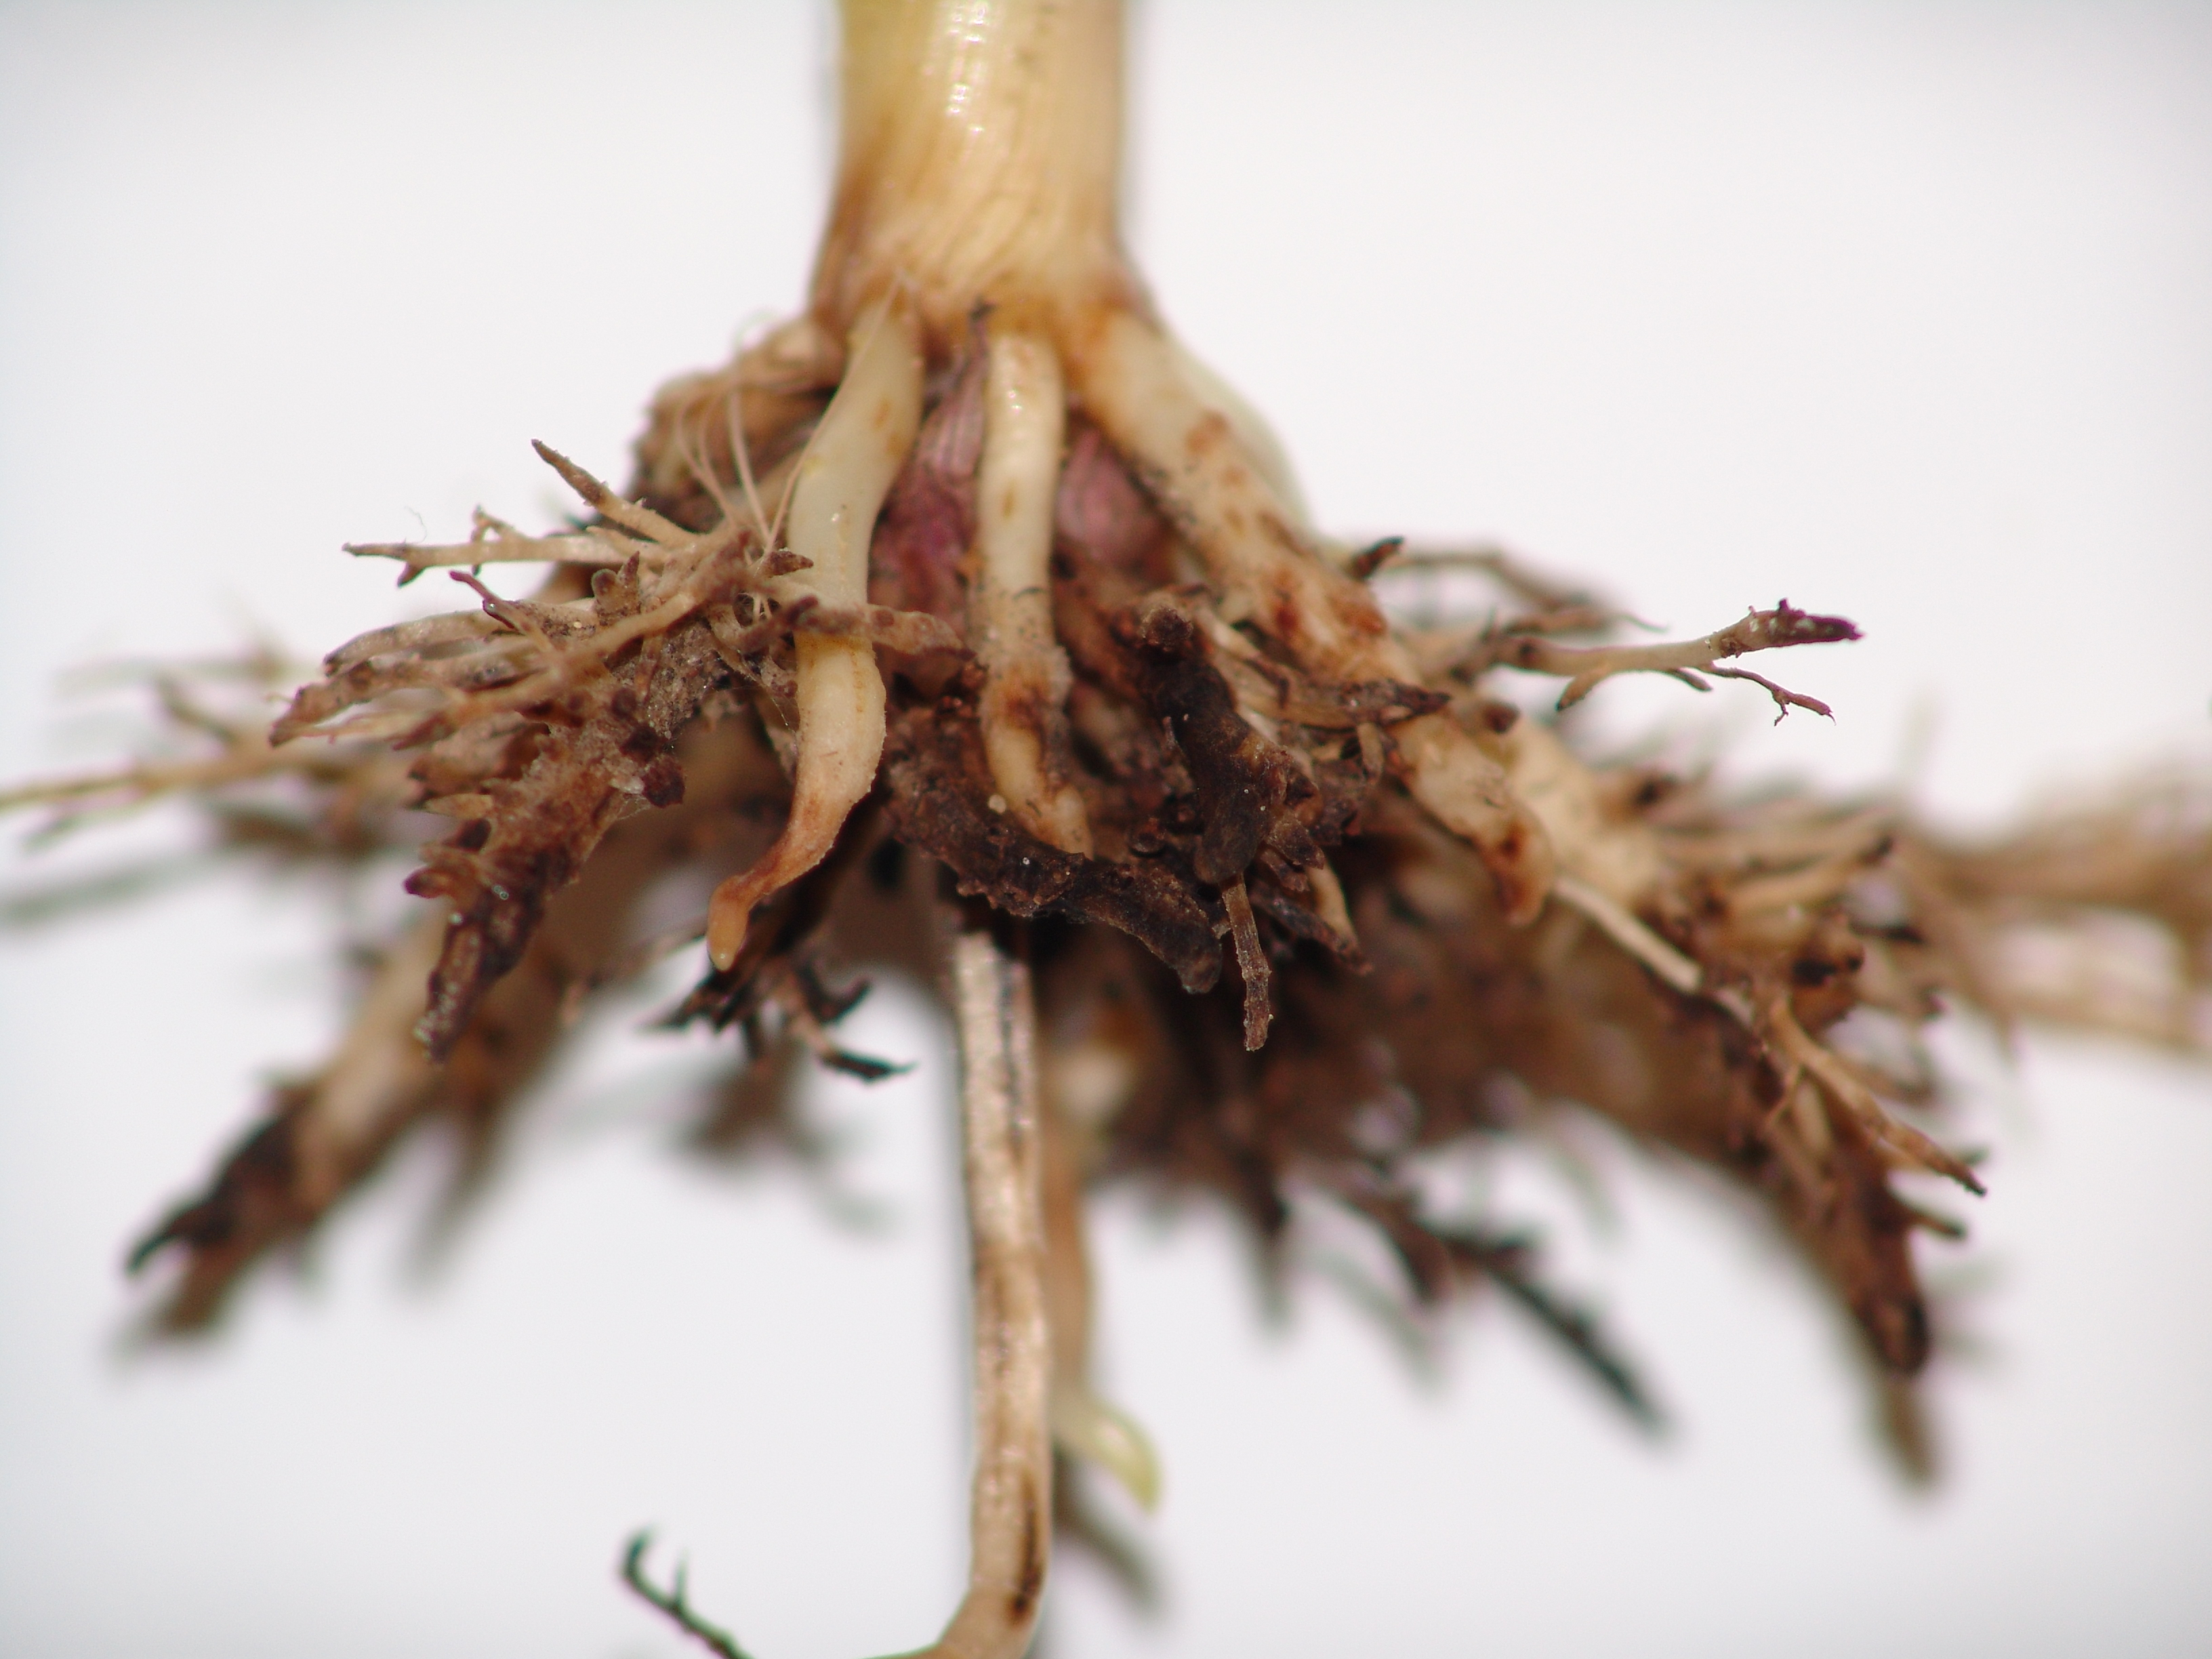 Nematode injured roots can be stunted, swollen, and malformed. They may also have lesions.